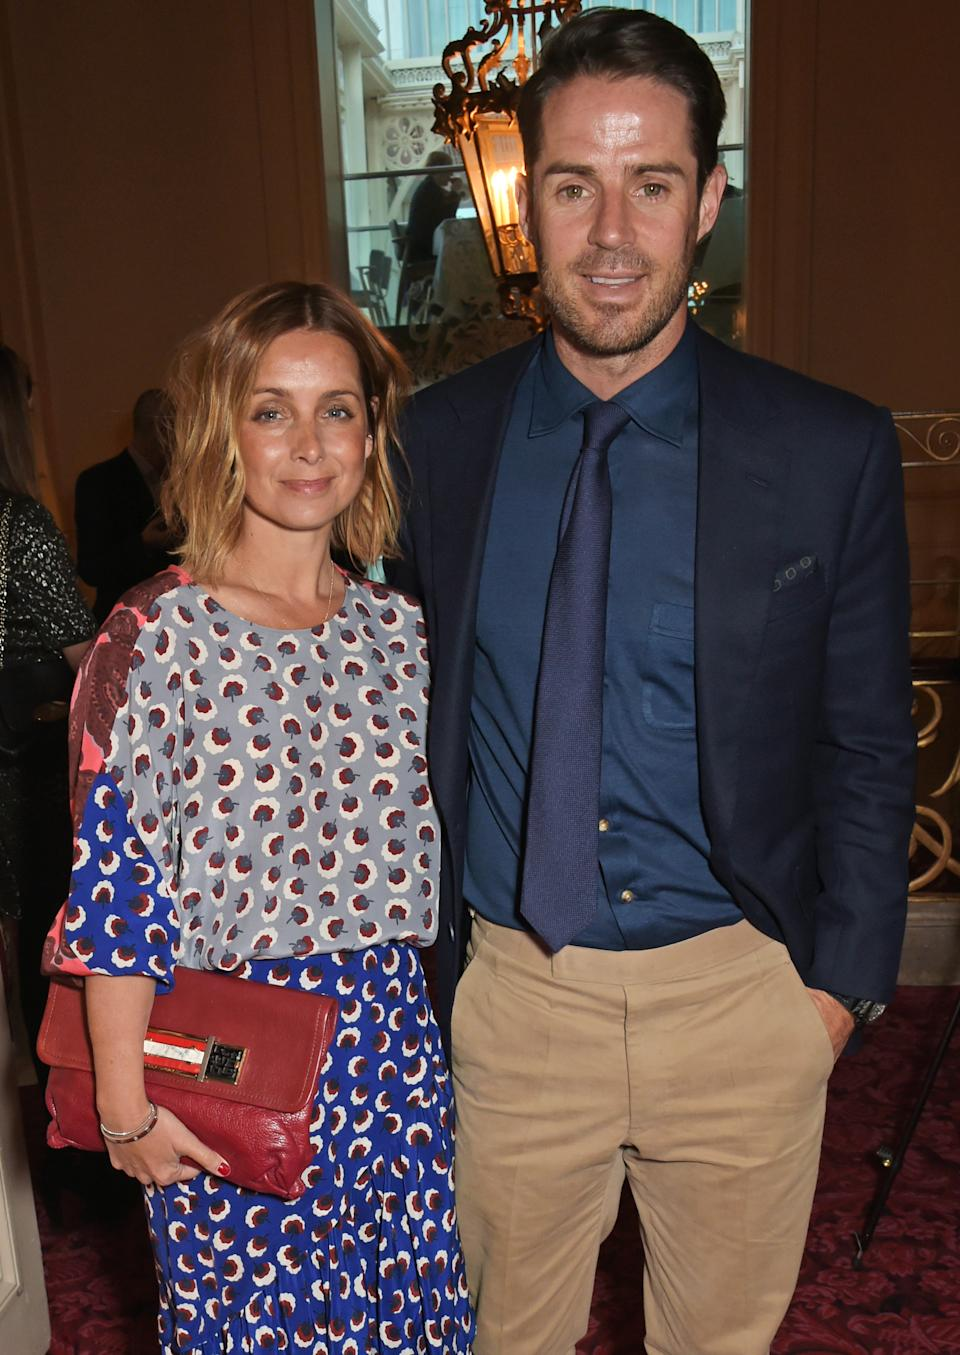 """Louise Redknapp (L) and Jamie Redknapp attend as Audi hosts the opening night performance of """"La Fille Mal Gardee"""" at The Royal Opera House on April 23, 2015 in London, England.  (Photo by David M. Benett/Getty Images for Audi)"""